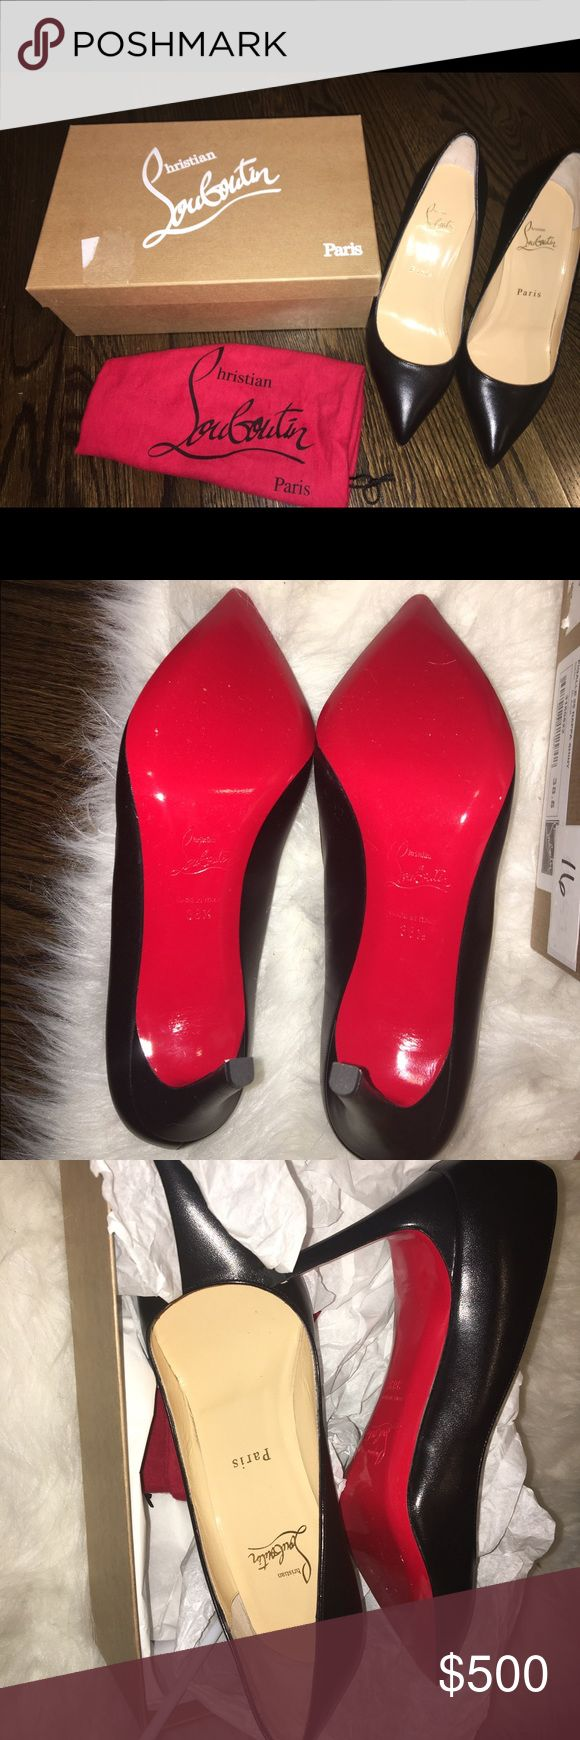 Black Louboutins Pig Allie 85 Nappa shiny - never worn - size 8.5 - box and dust bags included Christian Louboutin Shoes Heels